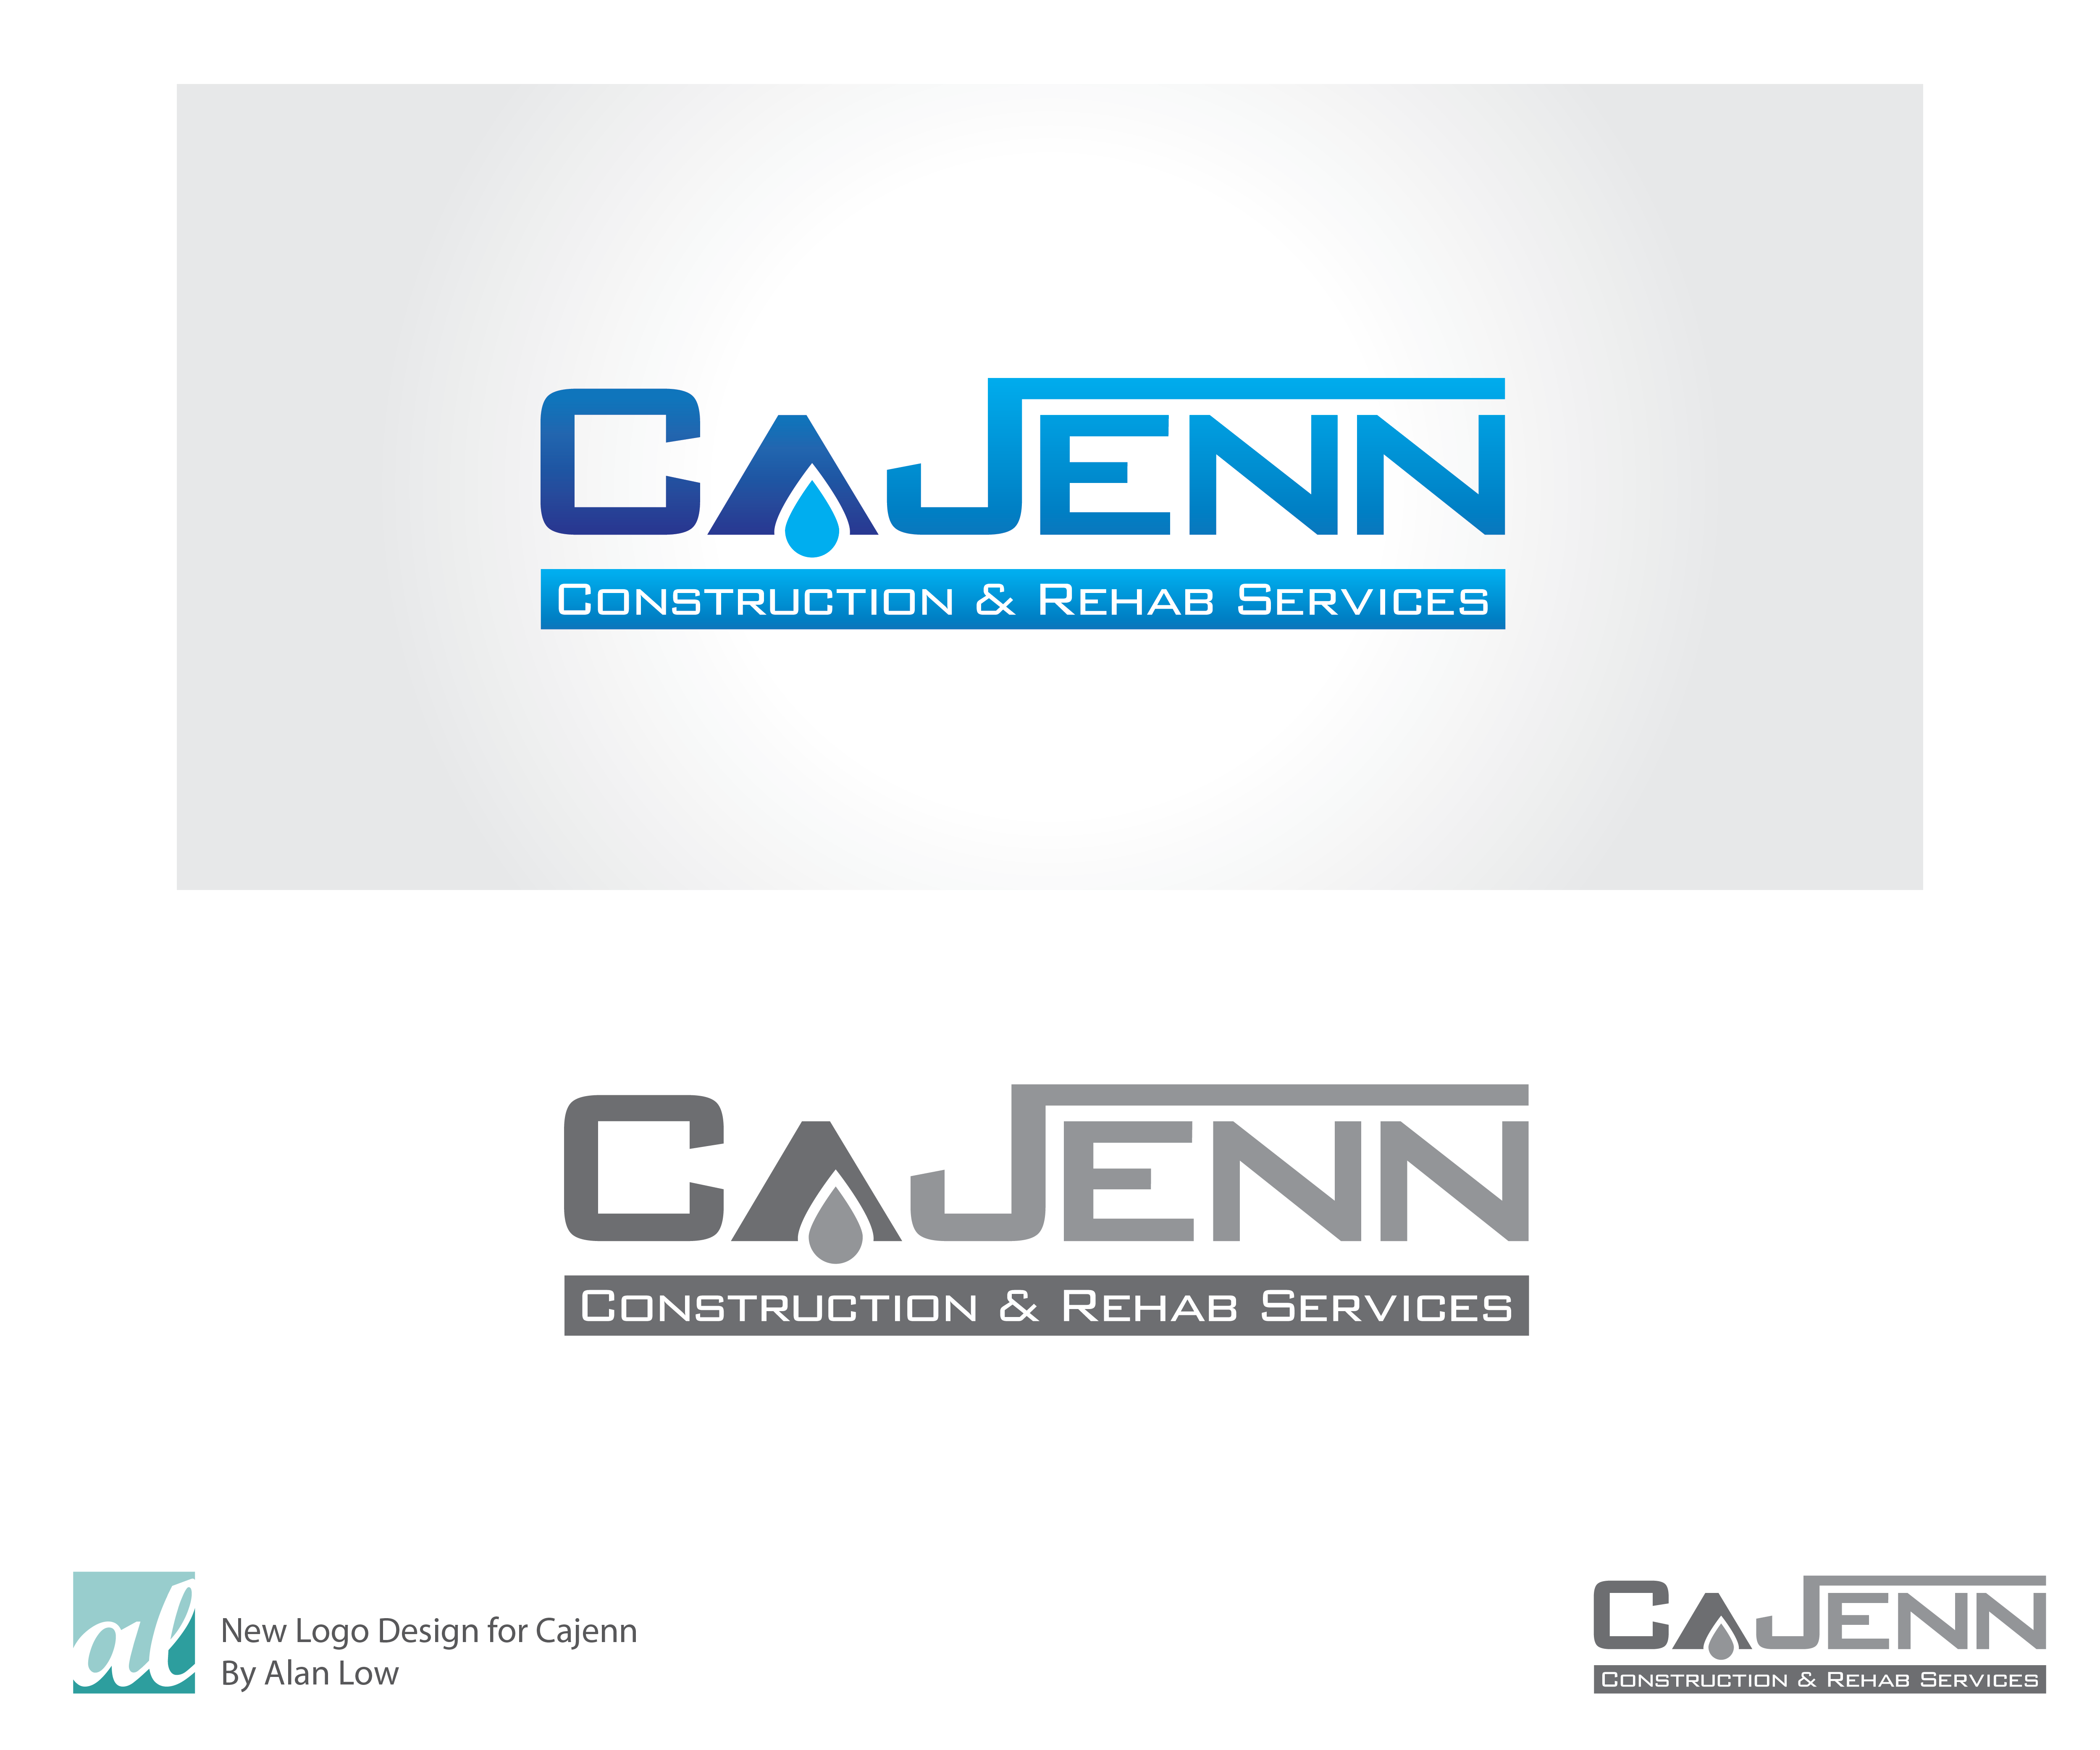 Logo Design by Alan Low - Entry No. 280 in the Logo Design Contest New Logo Design for CaJenn Construction & Rehab Services.